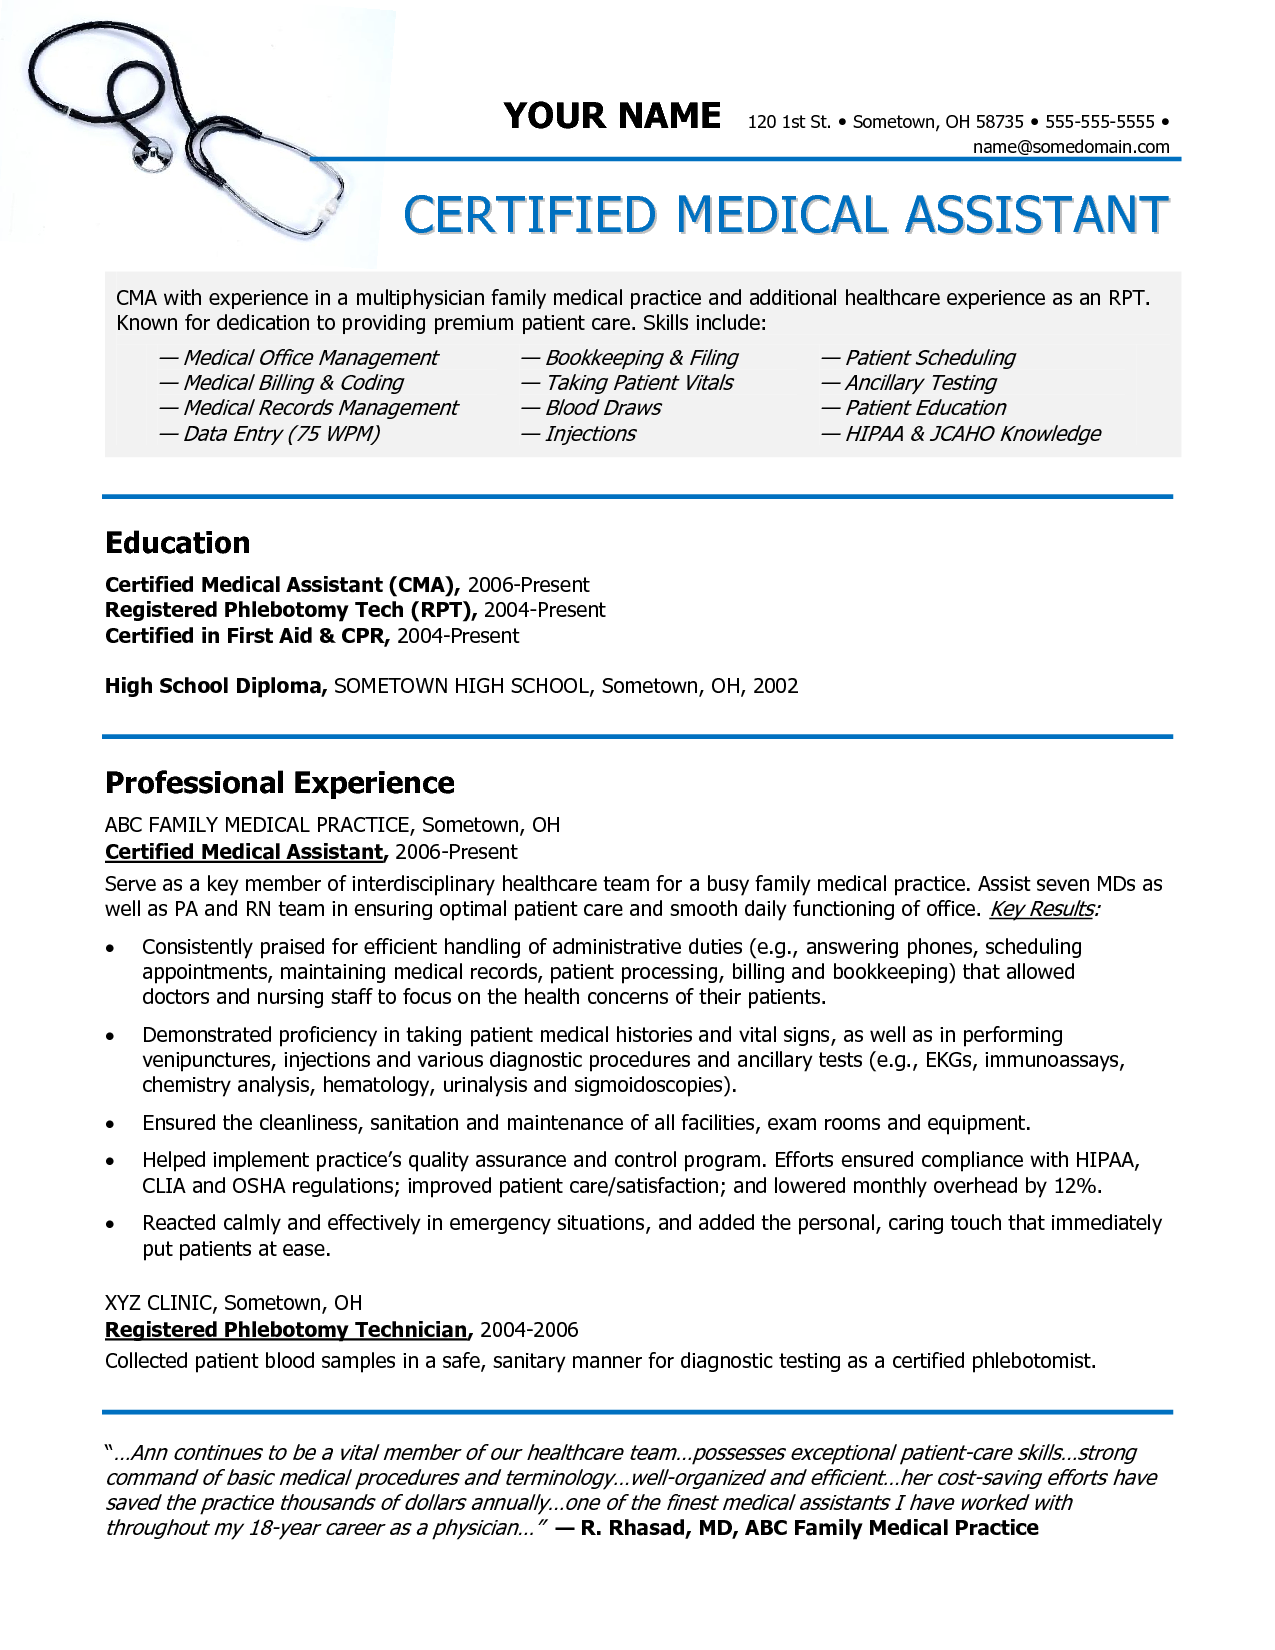 Medical Assistant Resume Entry Level Examples  Medical Assistant